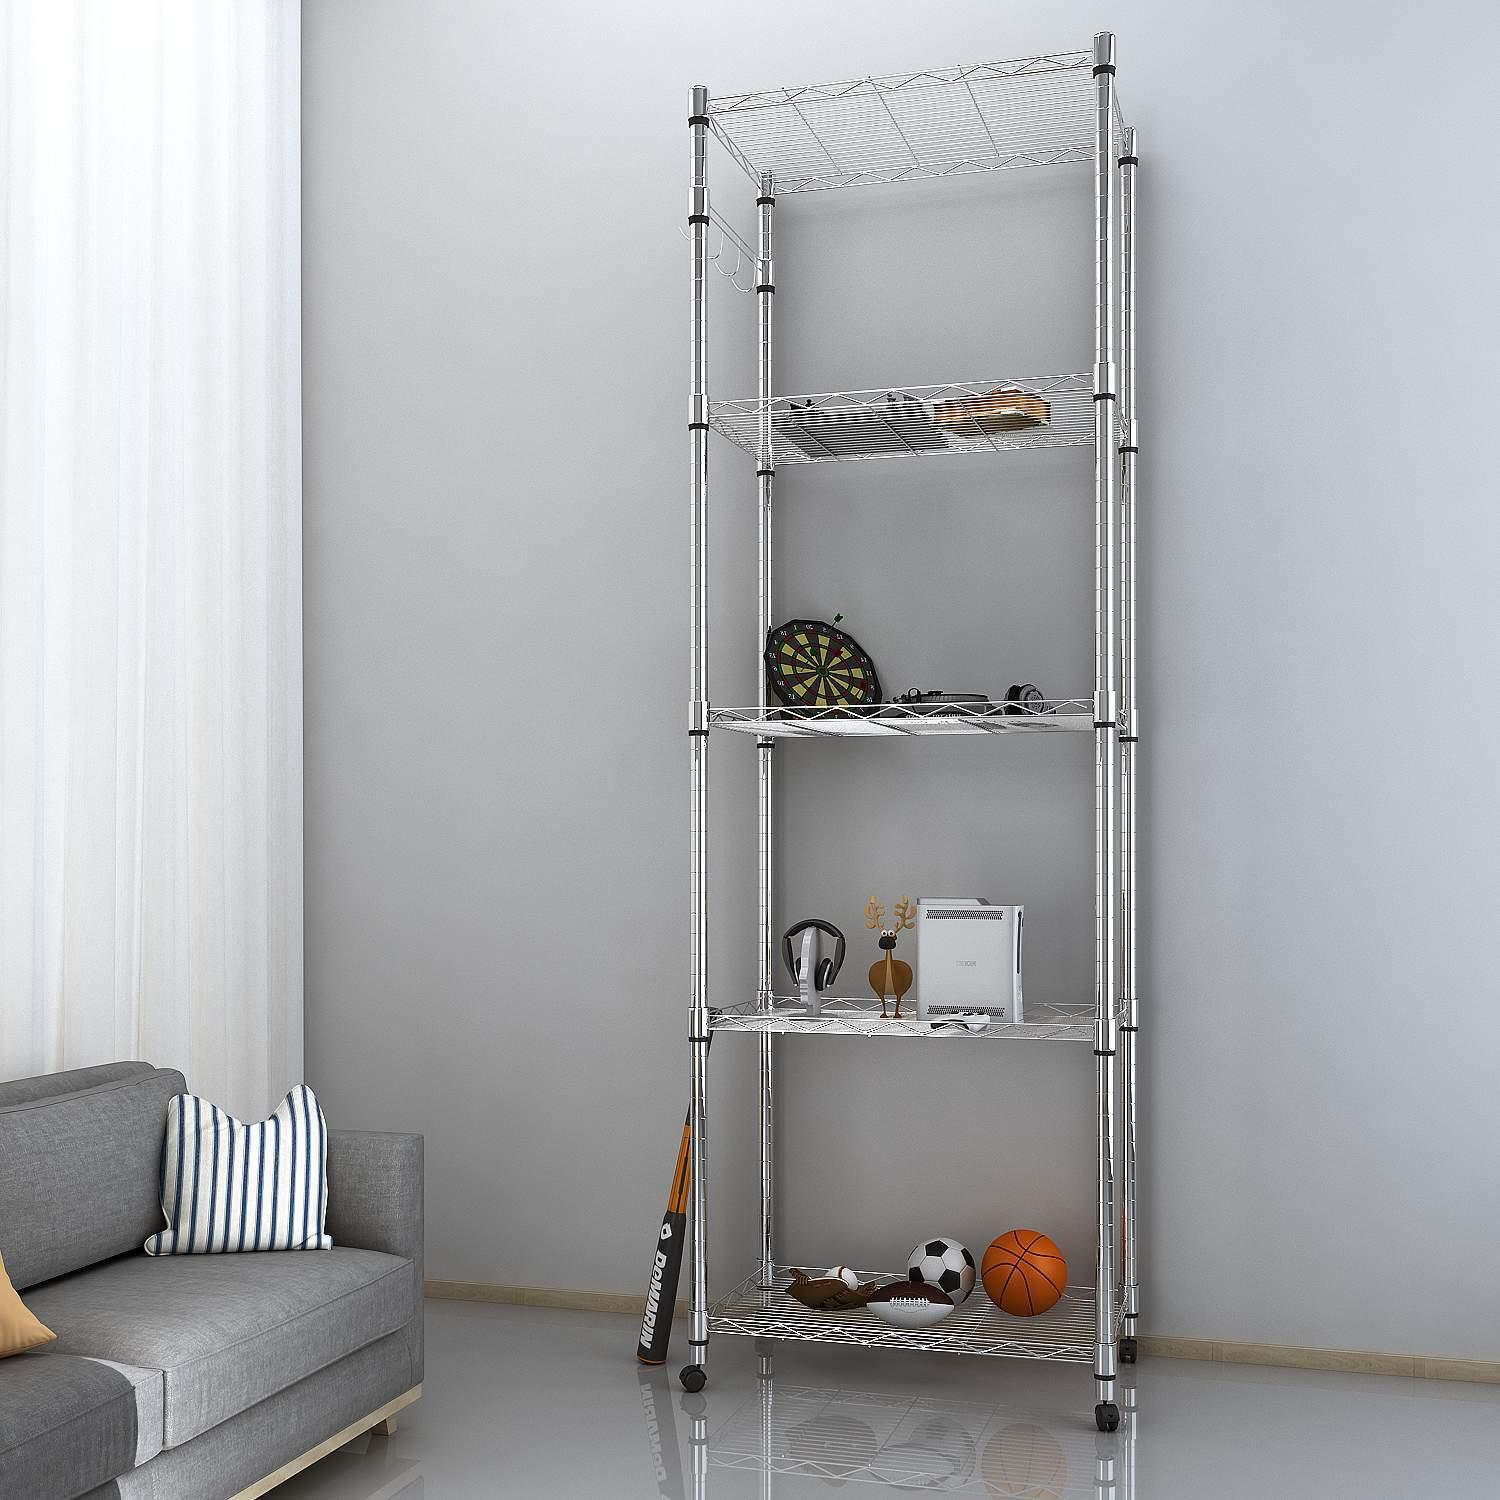 5 Tier Kitchen Balcony Living Room Steel Shelving with Wheels, 23.2 x 13.8 x 72inch (L x W x H) Silver DADEA